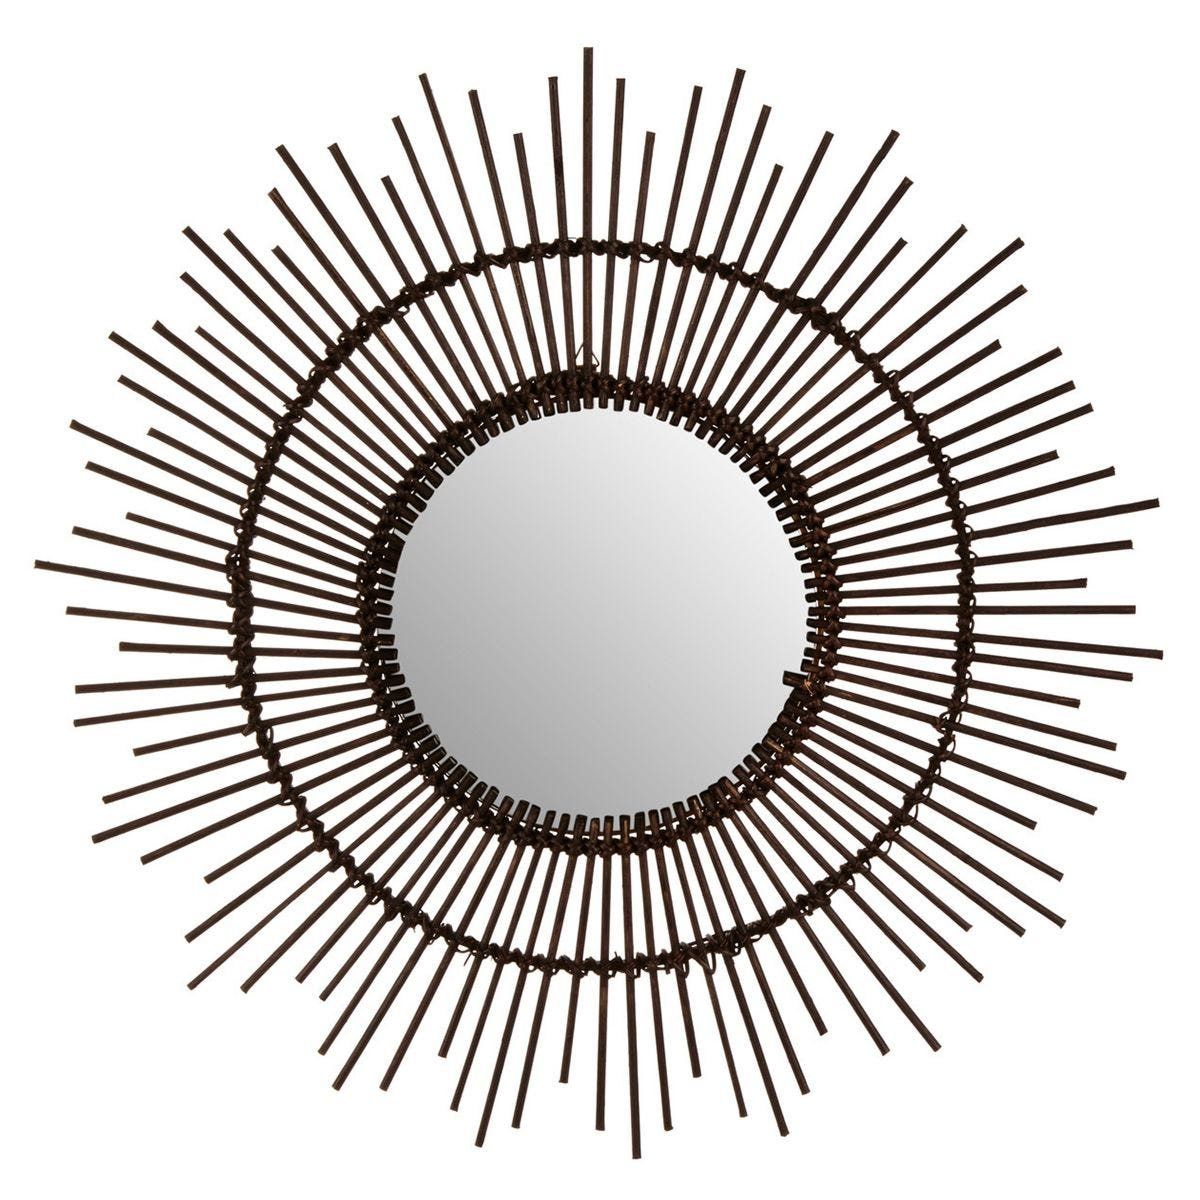 Round Wall Mirror - Natural Rattan/Black